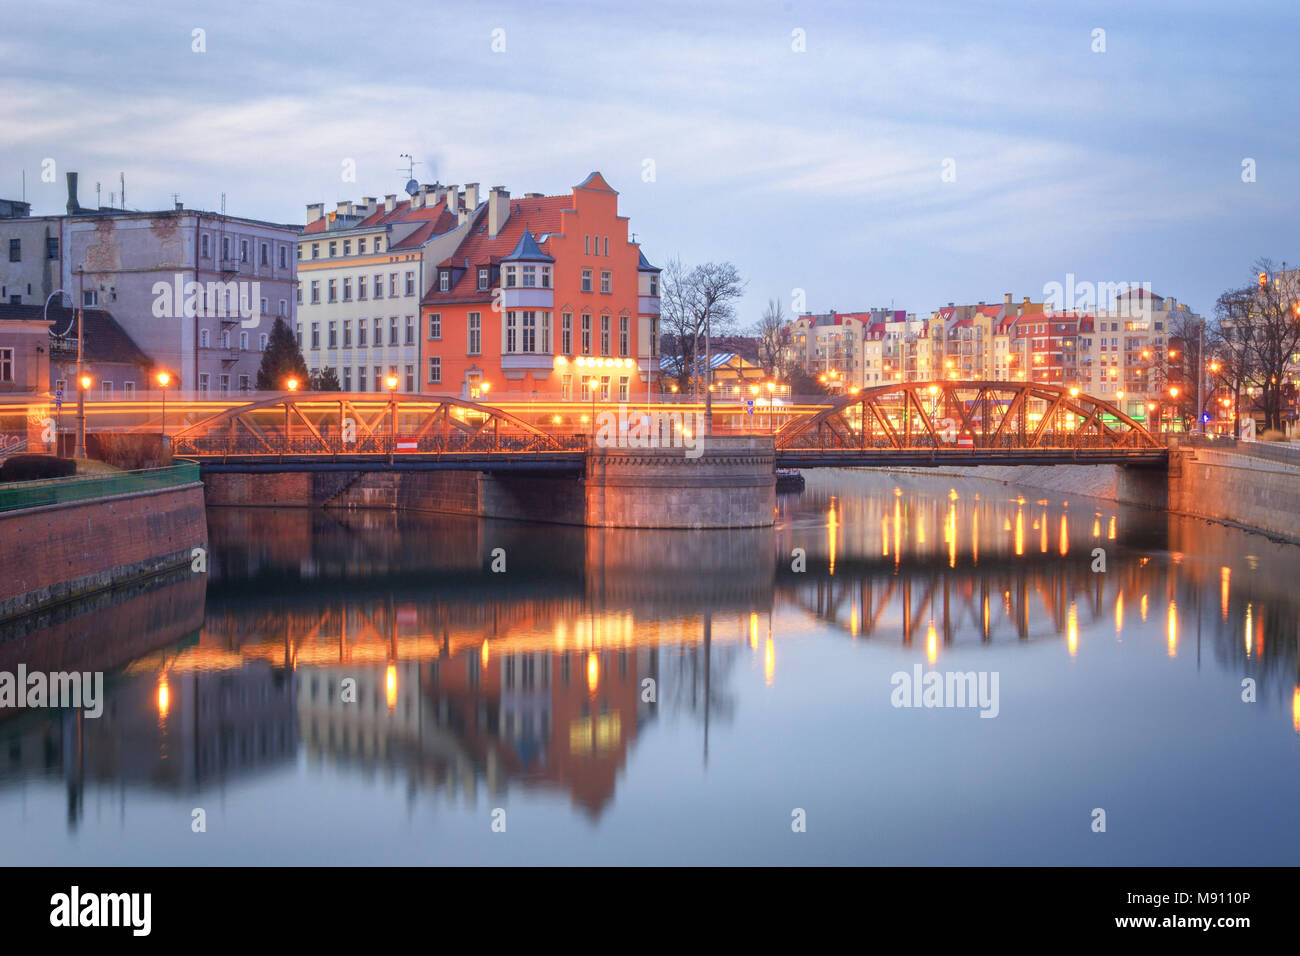 Wroclaw, Poland- View of the old town Ostrow Tumski Stock Photo